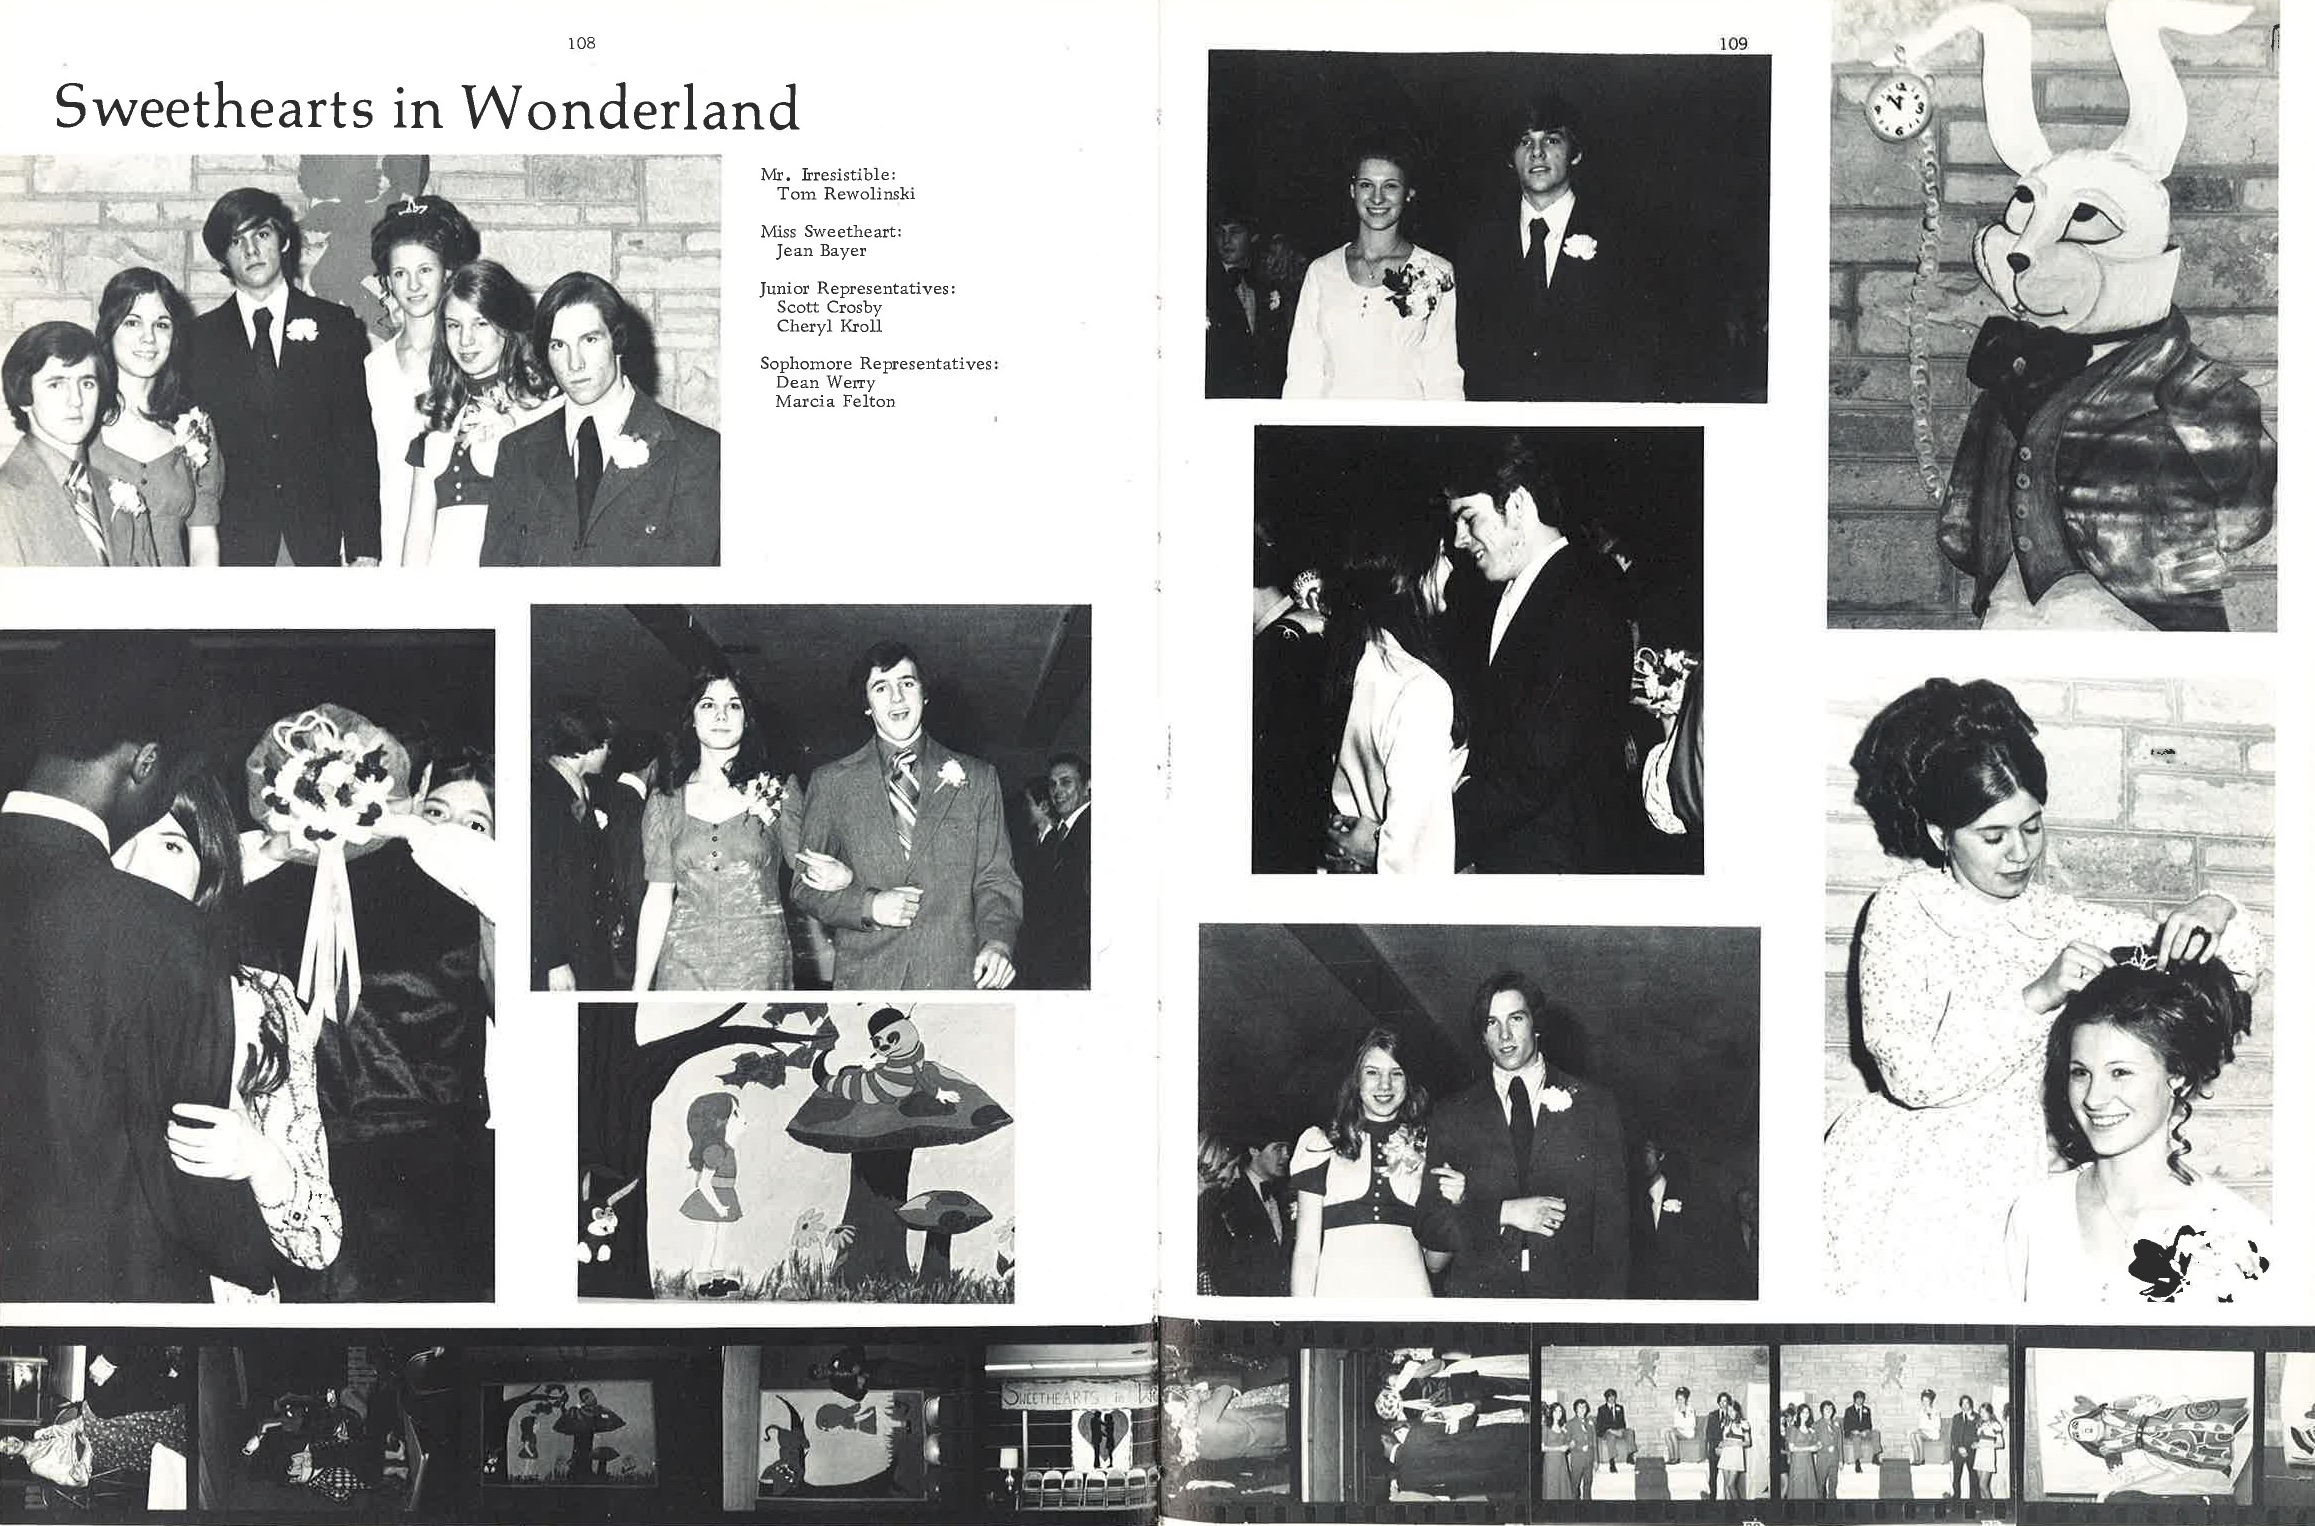 1972_Yearbook_108-109.jpg